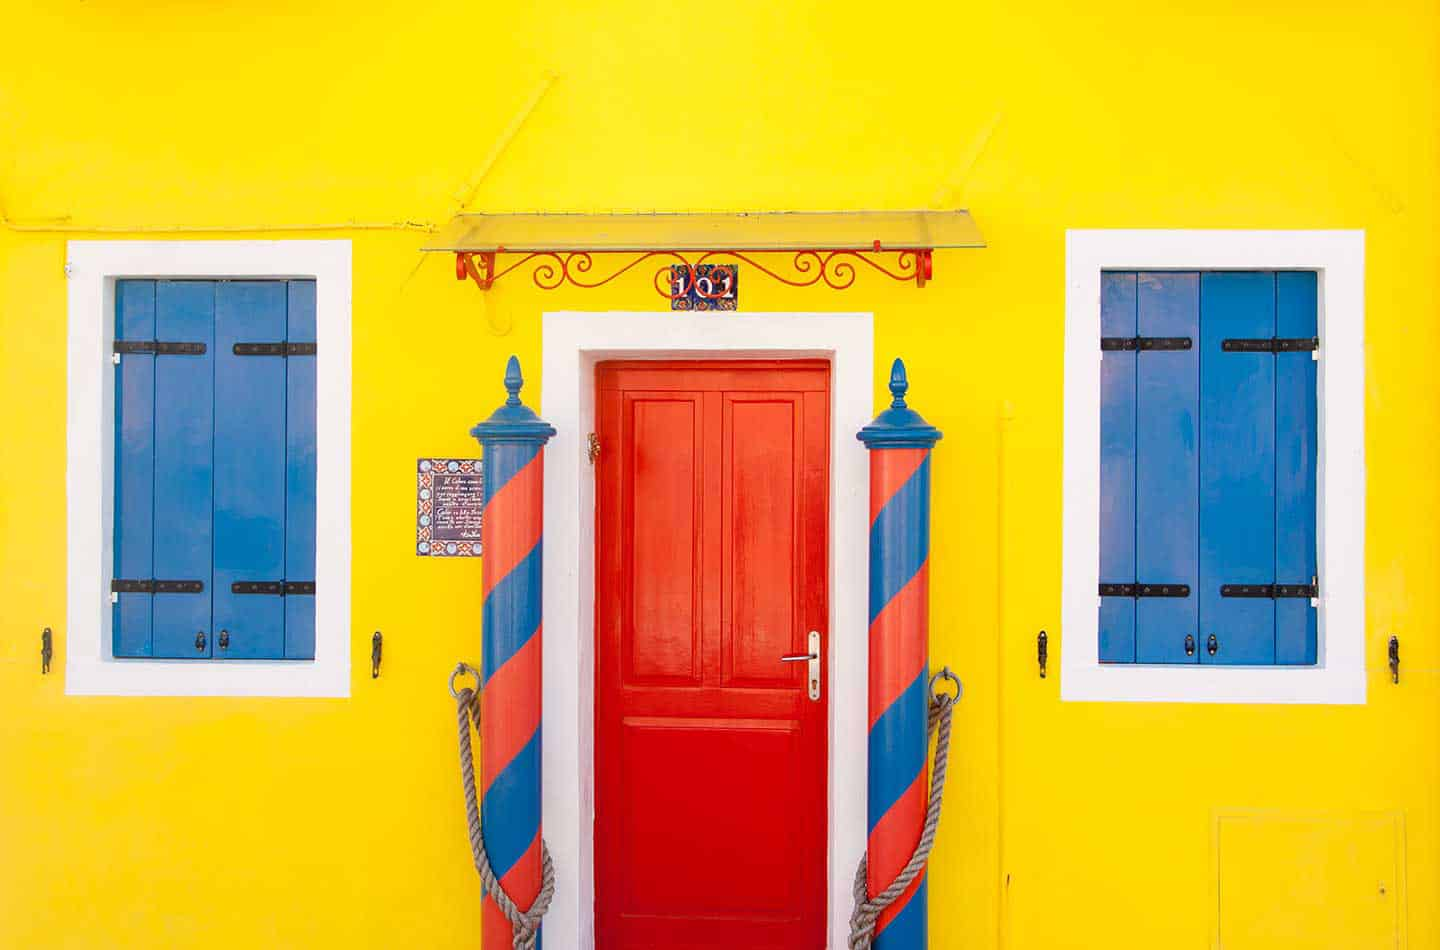 Image of a bright yellow house in Burano, Venice, Italy